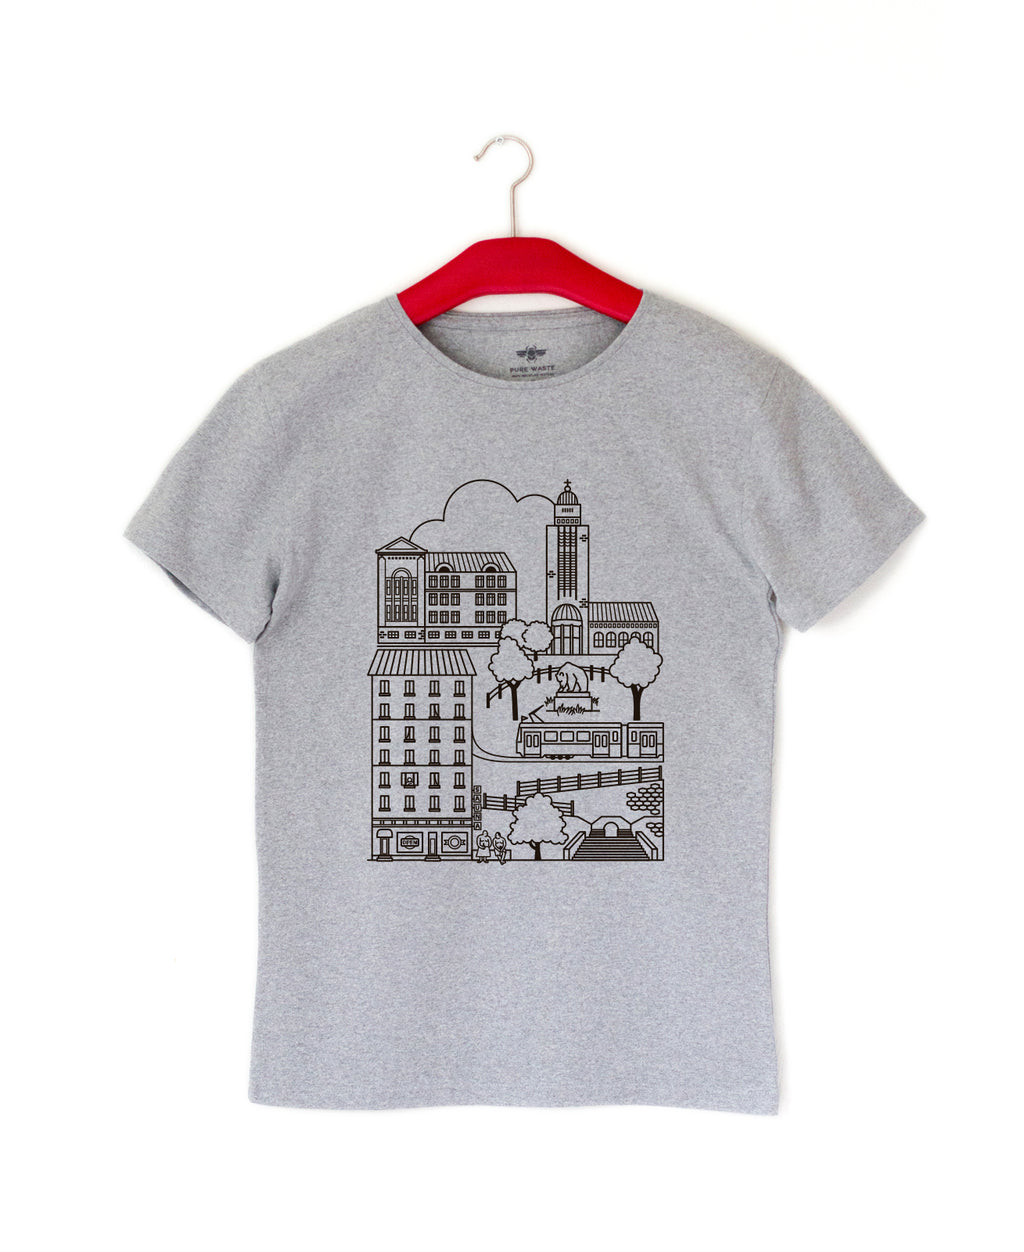 Kallio t-shirt, adults